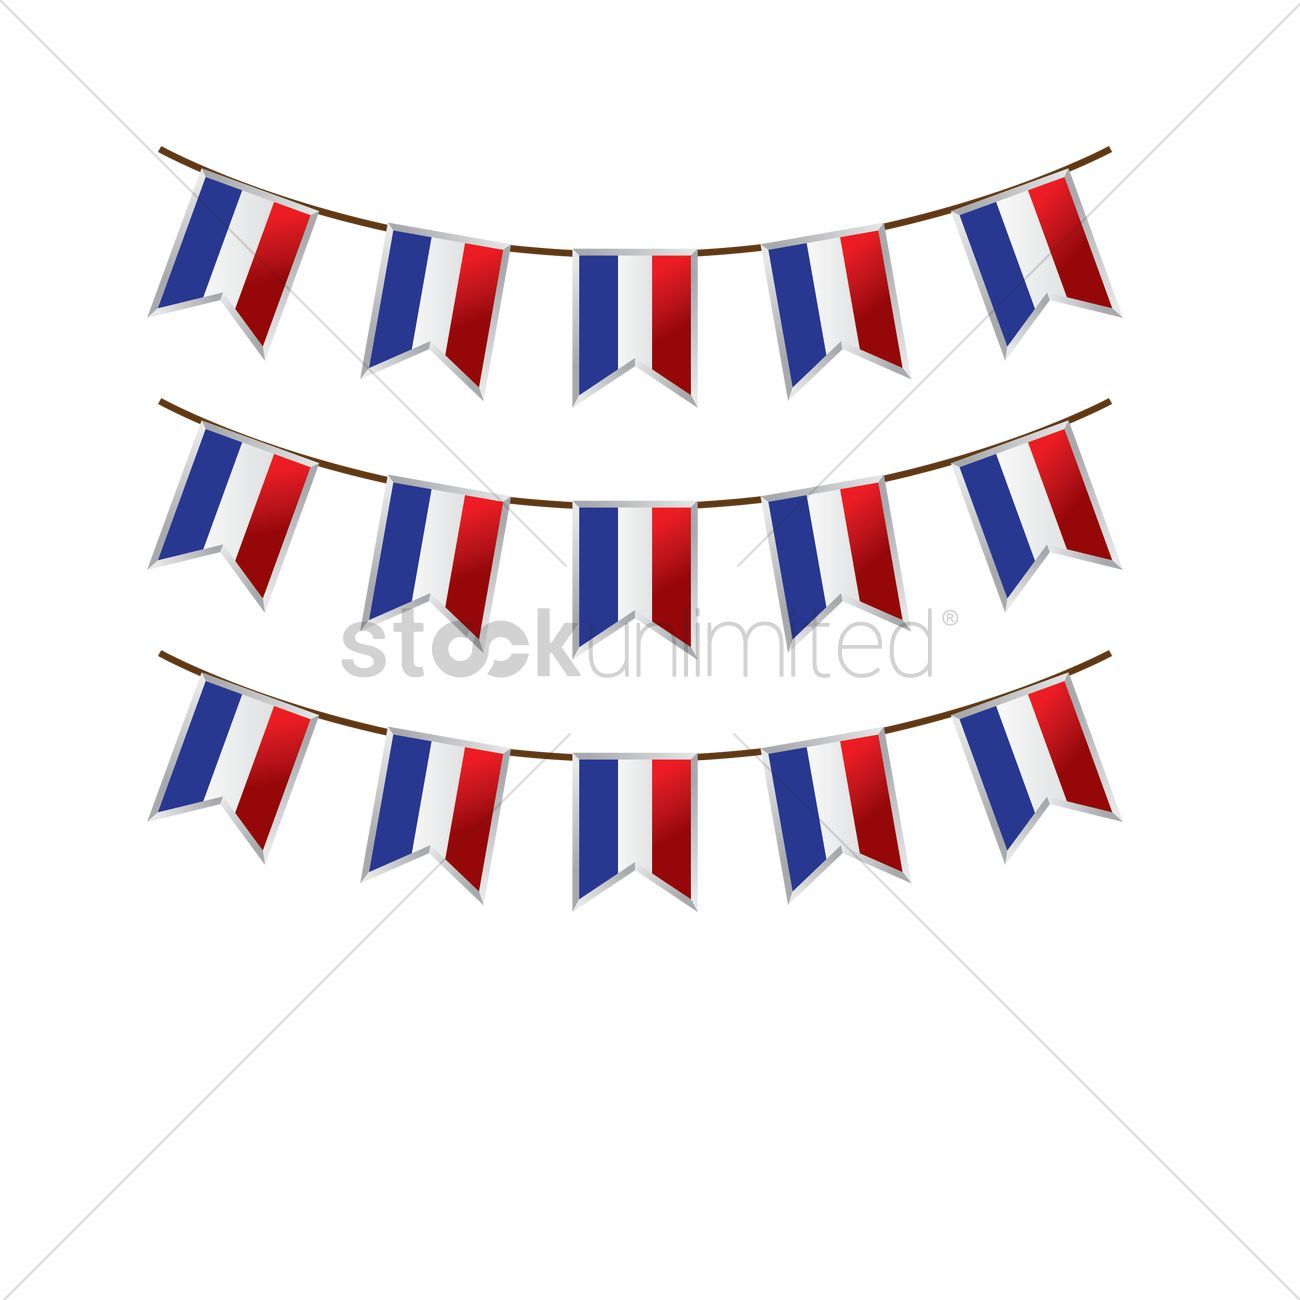 france flag buntings vector image 1567830 stockunlimited